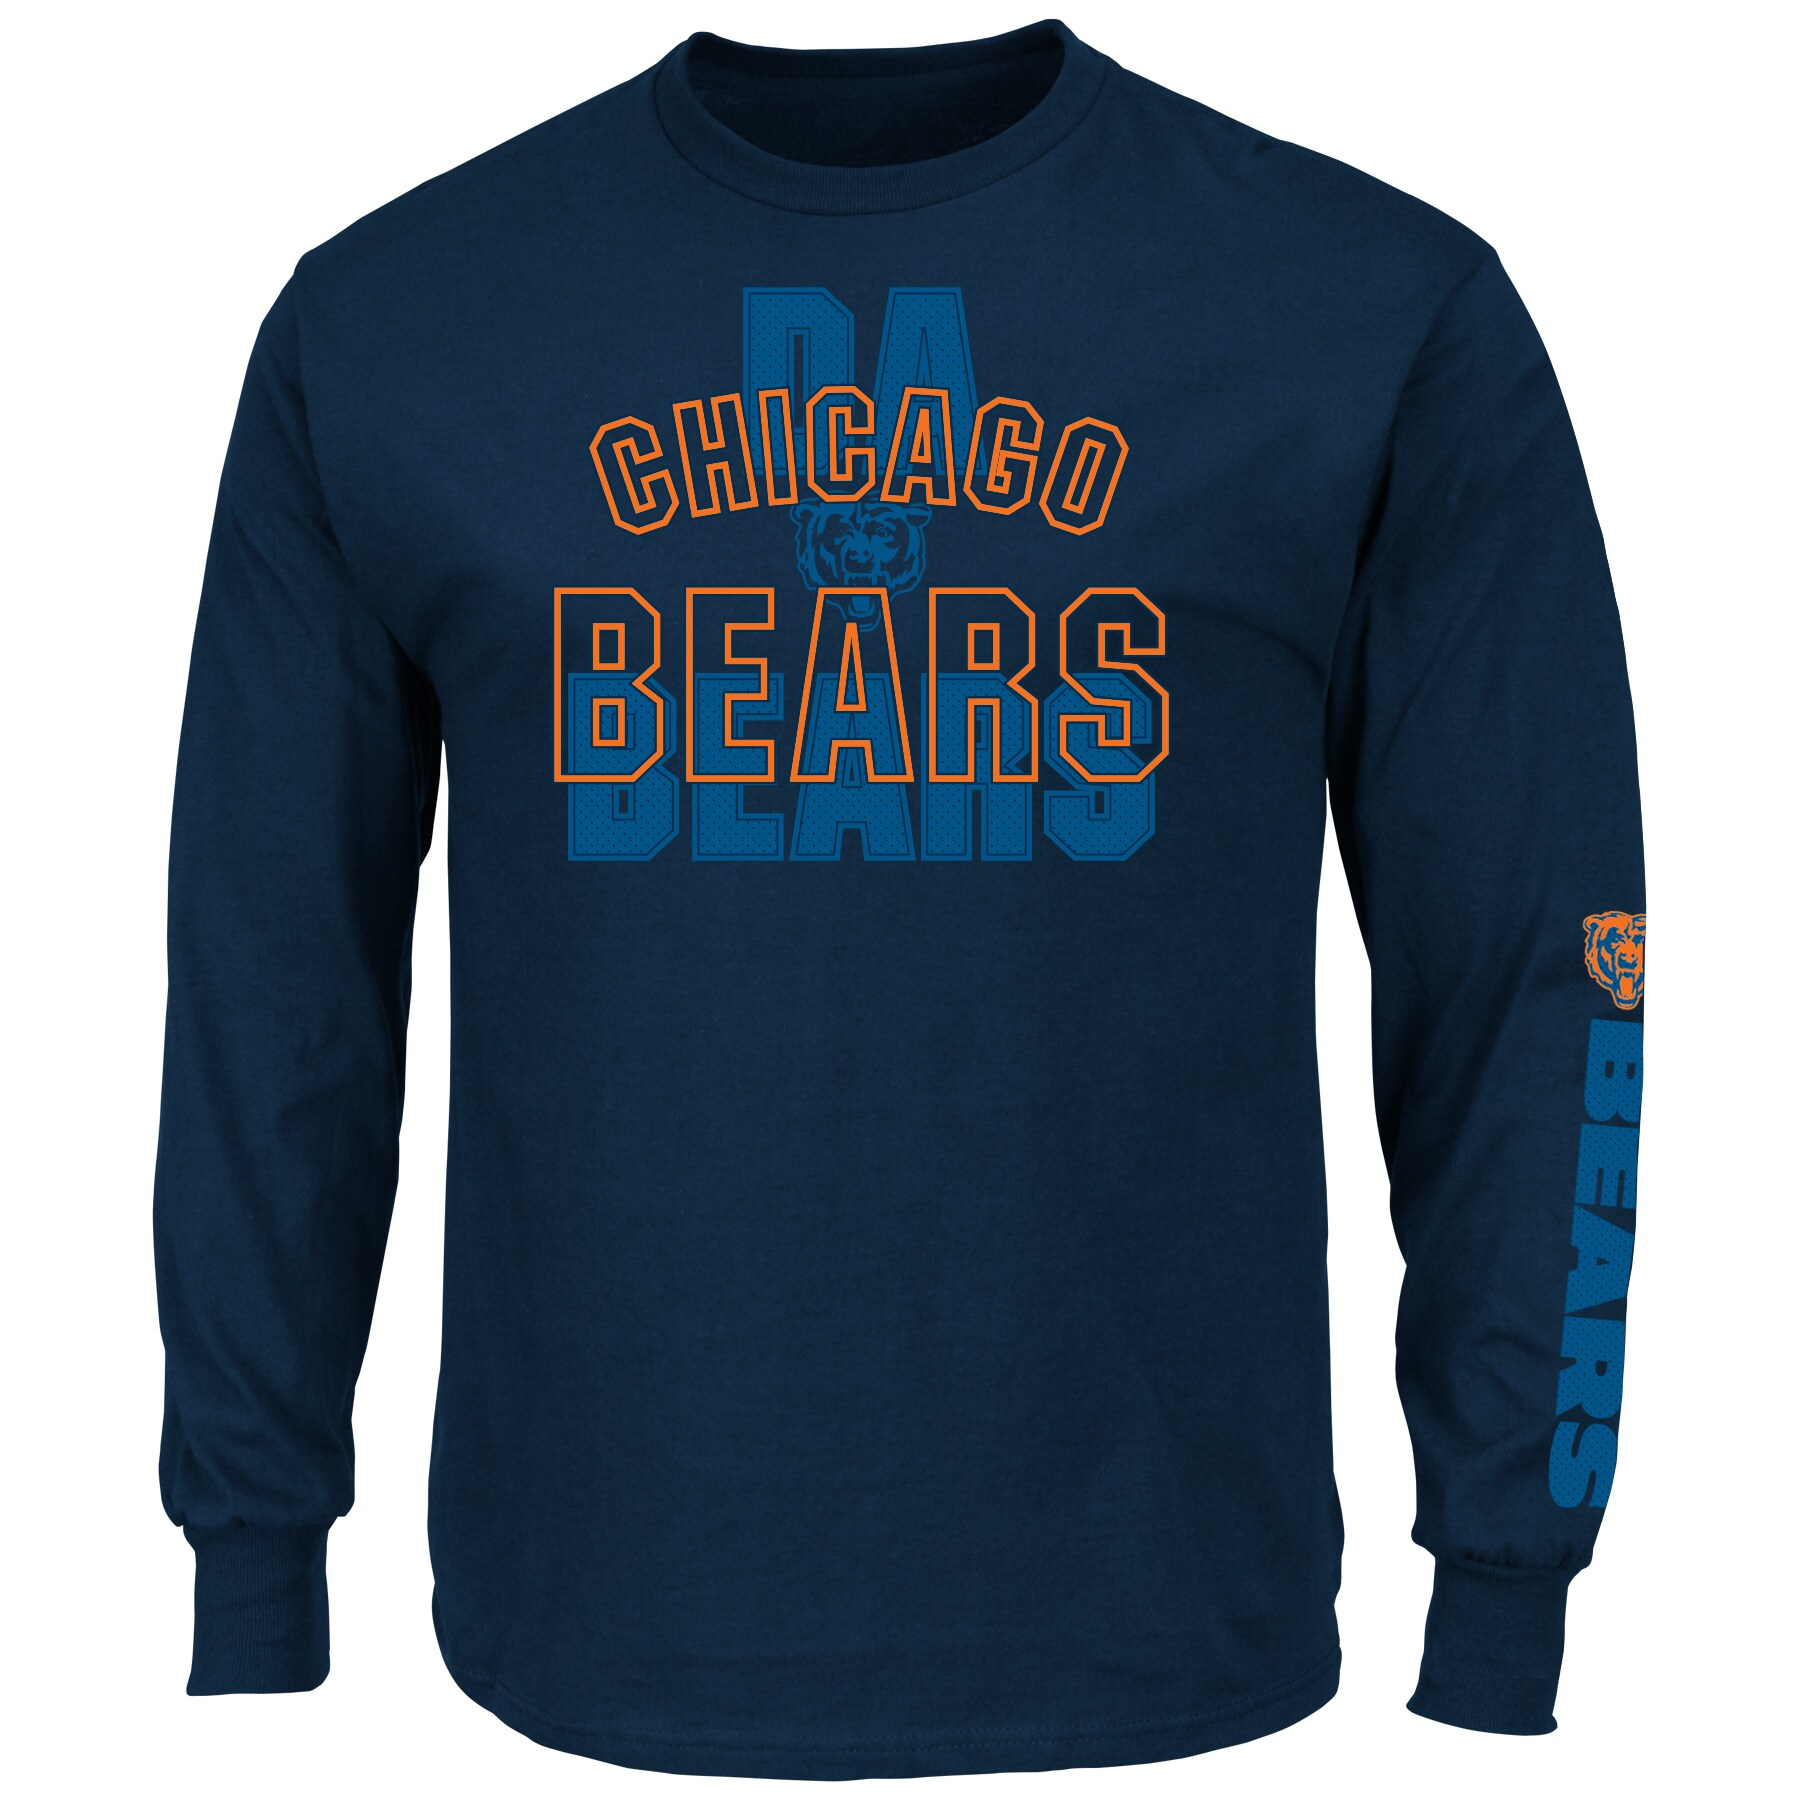 Chicago Bears Majestic Primary Receiver Slogan Long Sleeve T-Shirt - Navy